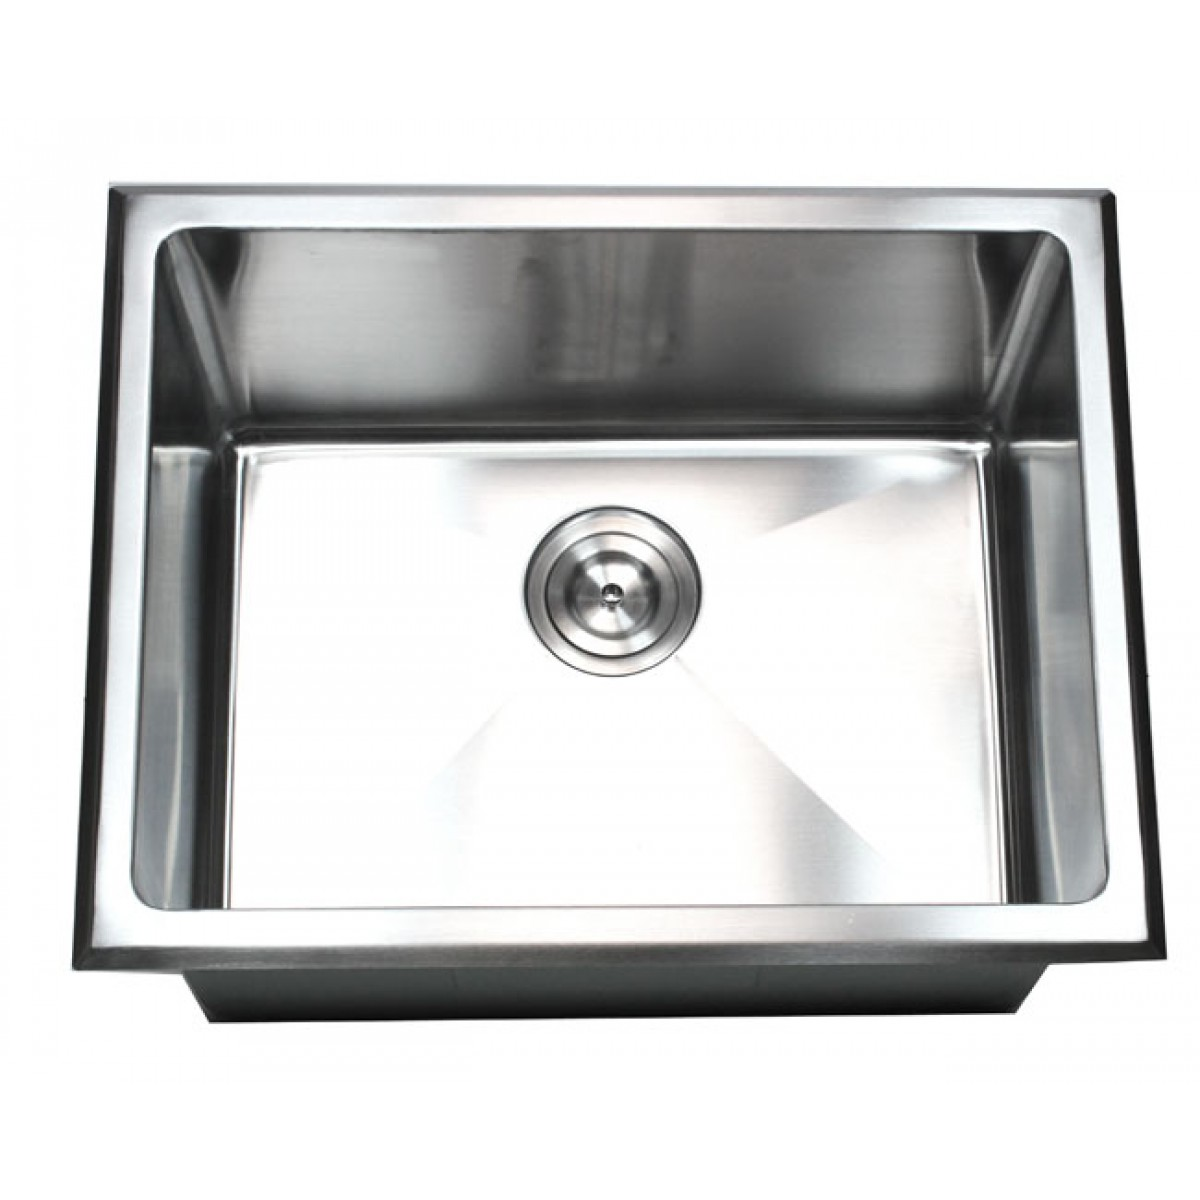 23 Inch Undermount / Drop In Stainless Steel Single Bowl Kitchen